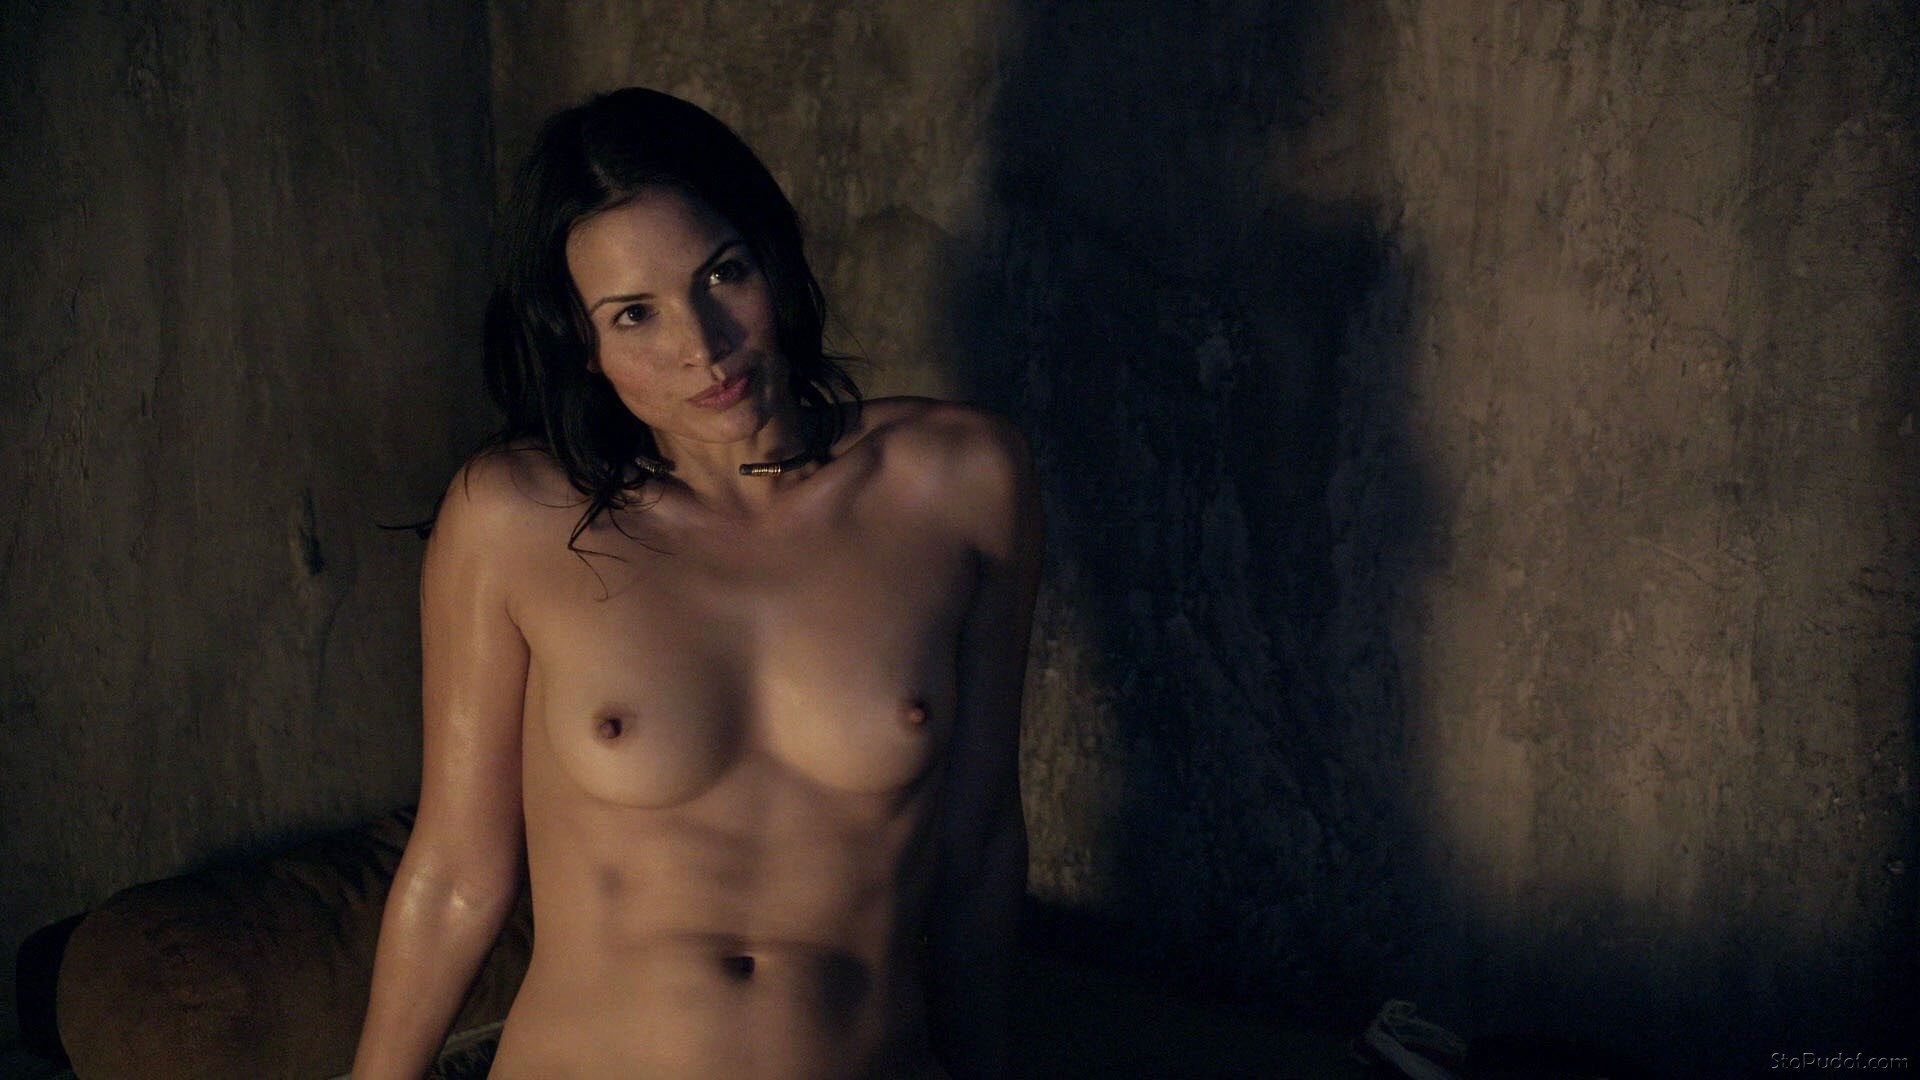 new nude pic of Katrina Law - UkPhotoSafari